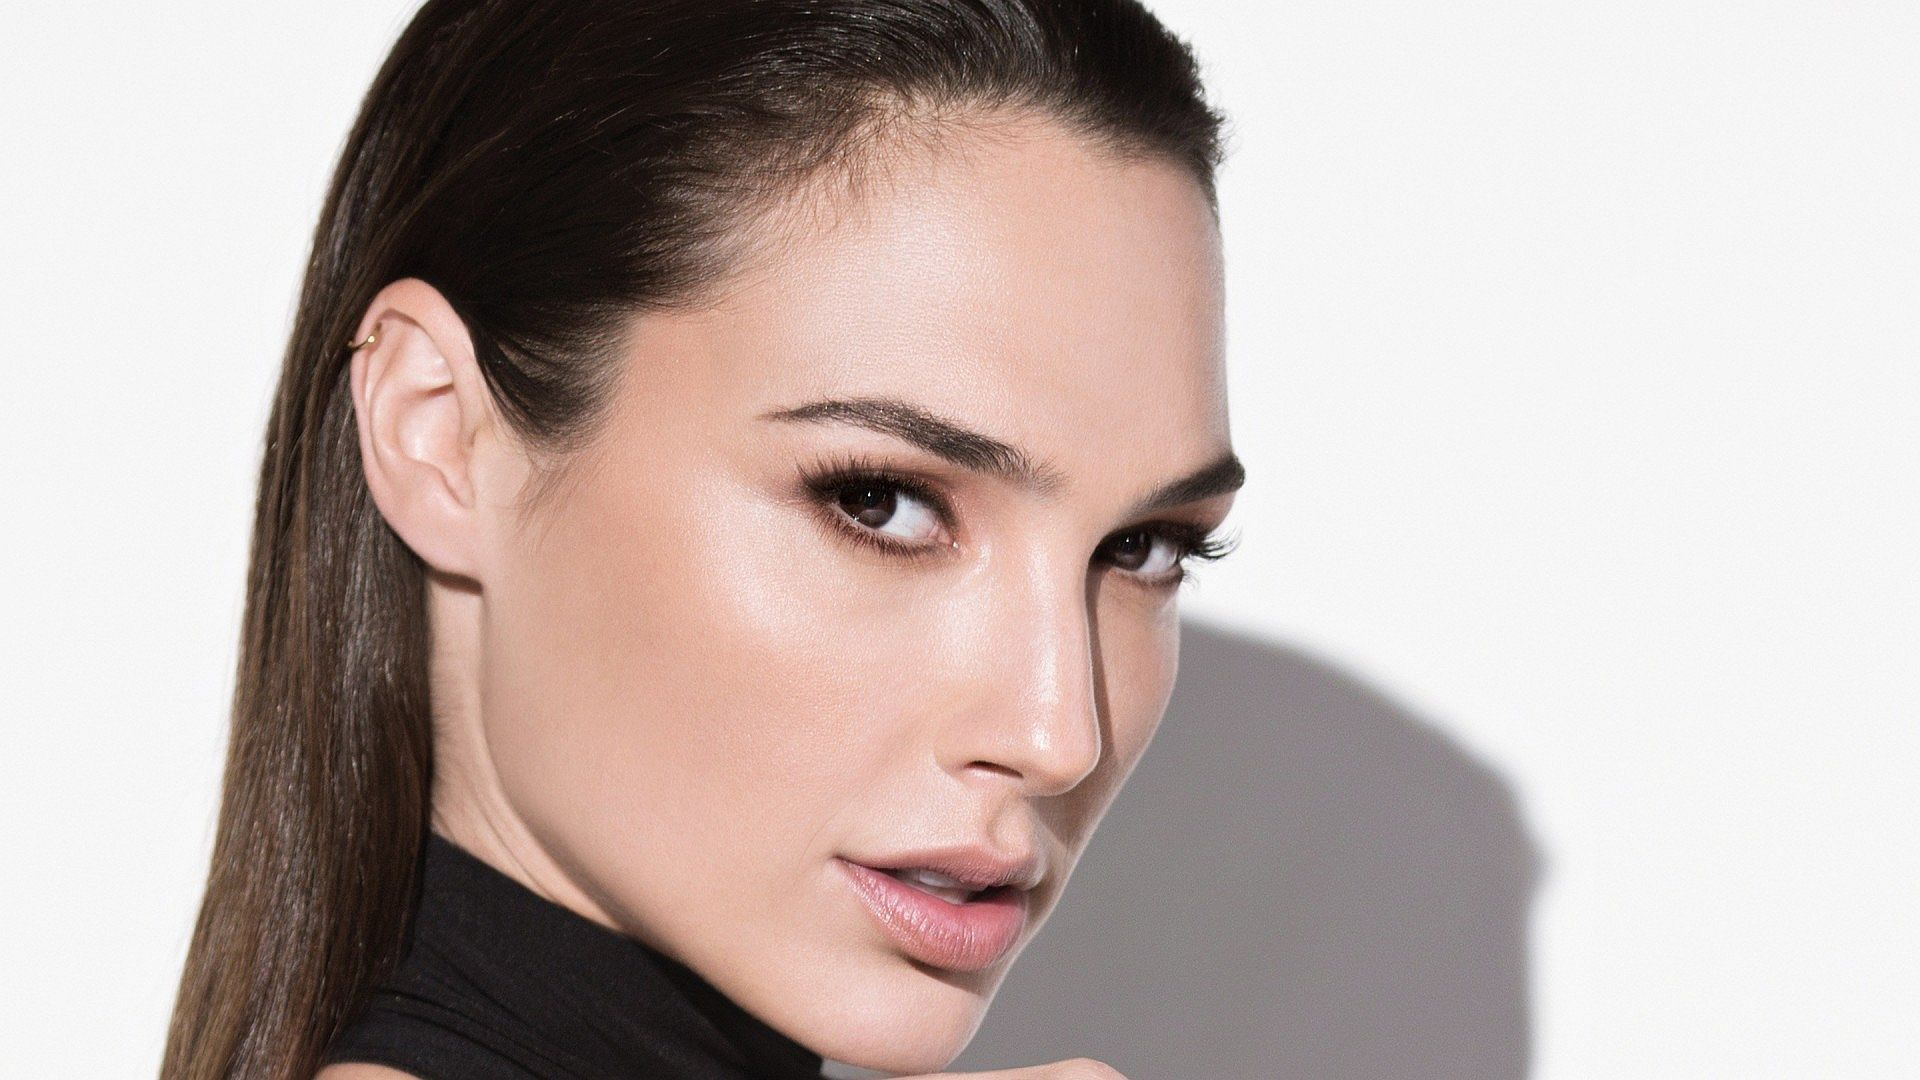 Steal the Look: Gal Gadot, Queen of Superhero